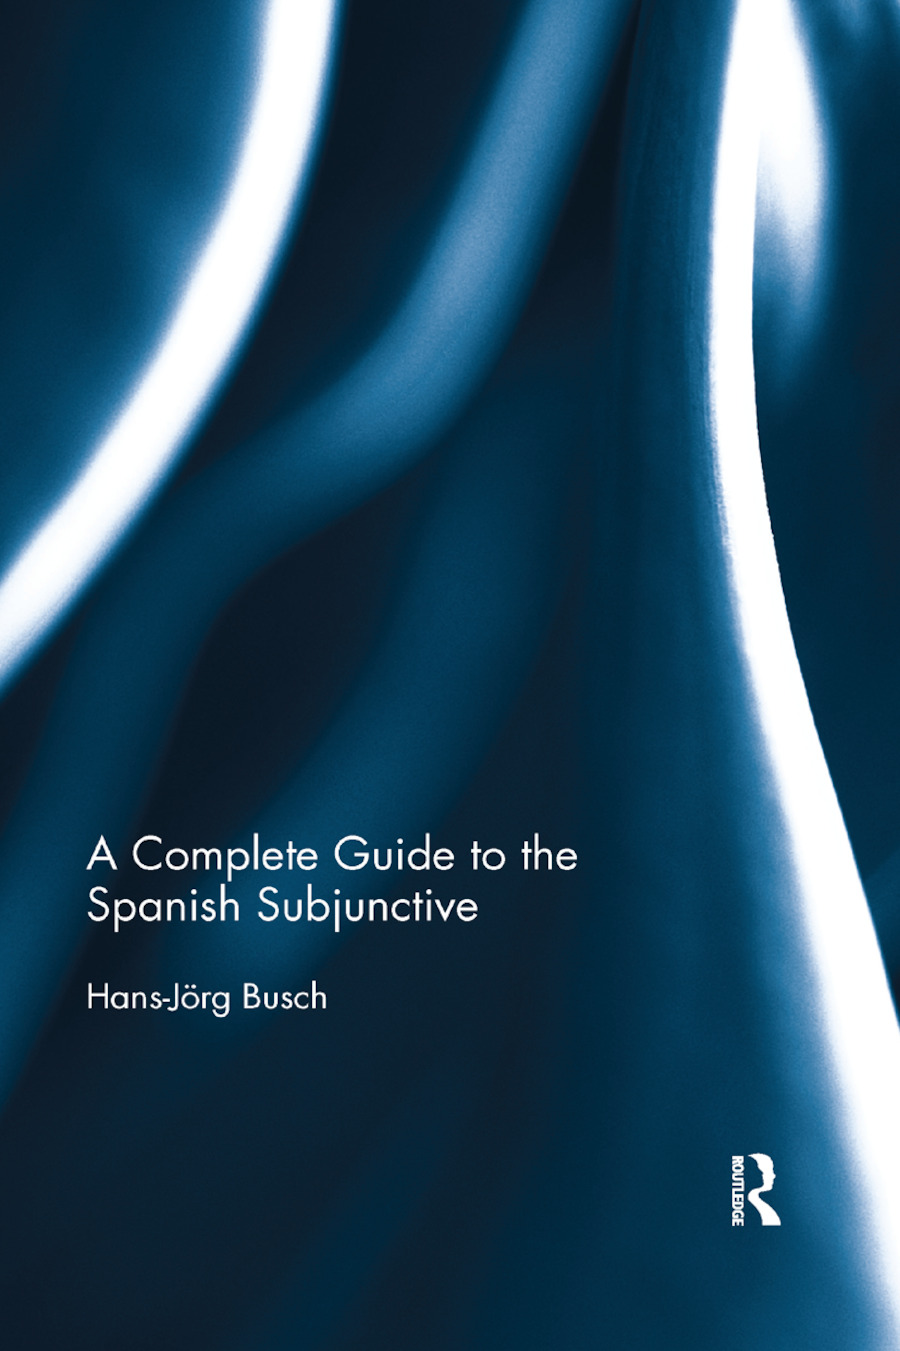 A Complete Guide to the Spanish Subjunctive book cover